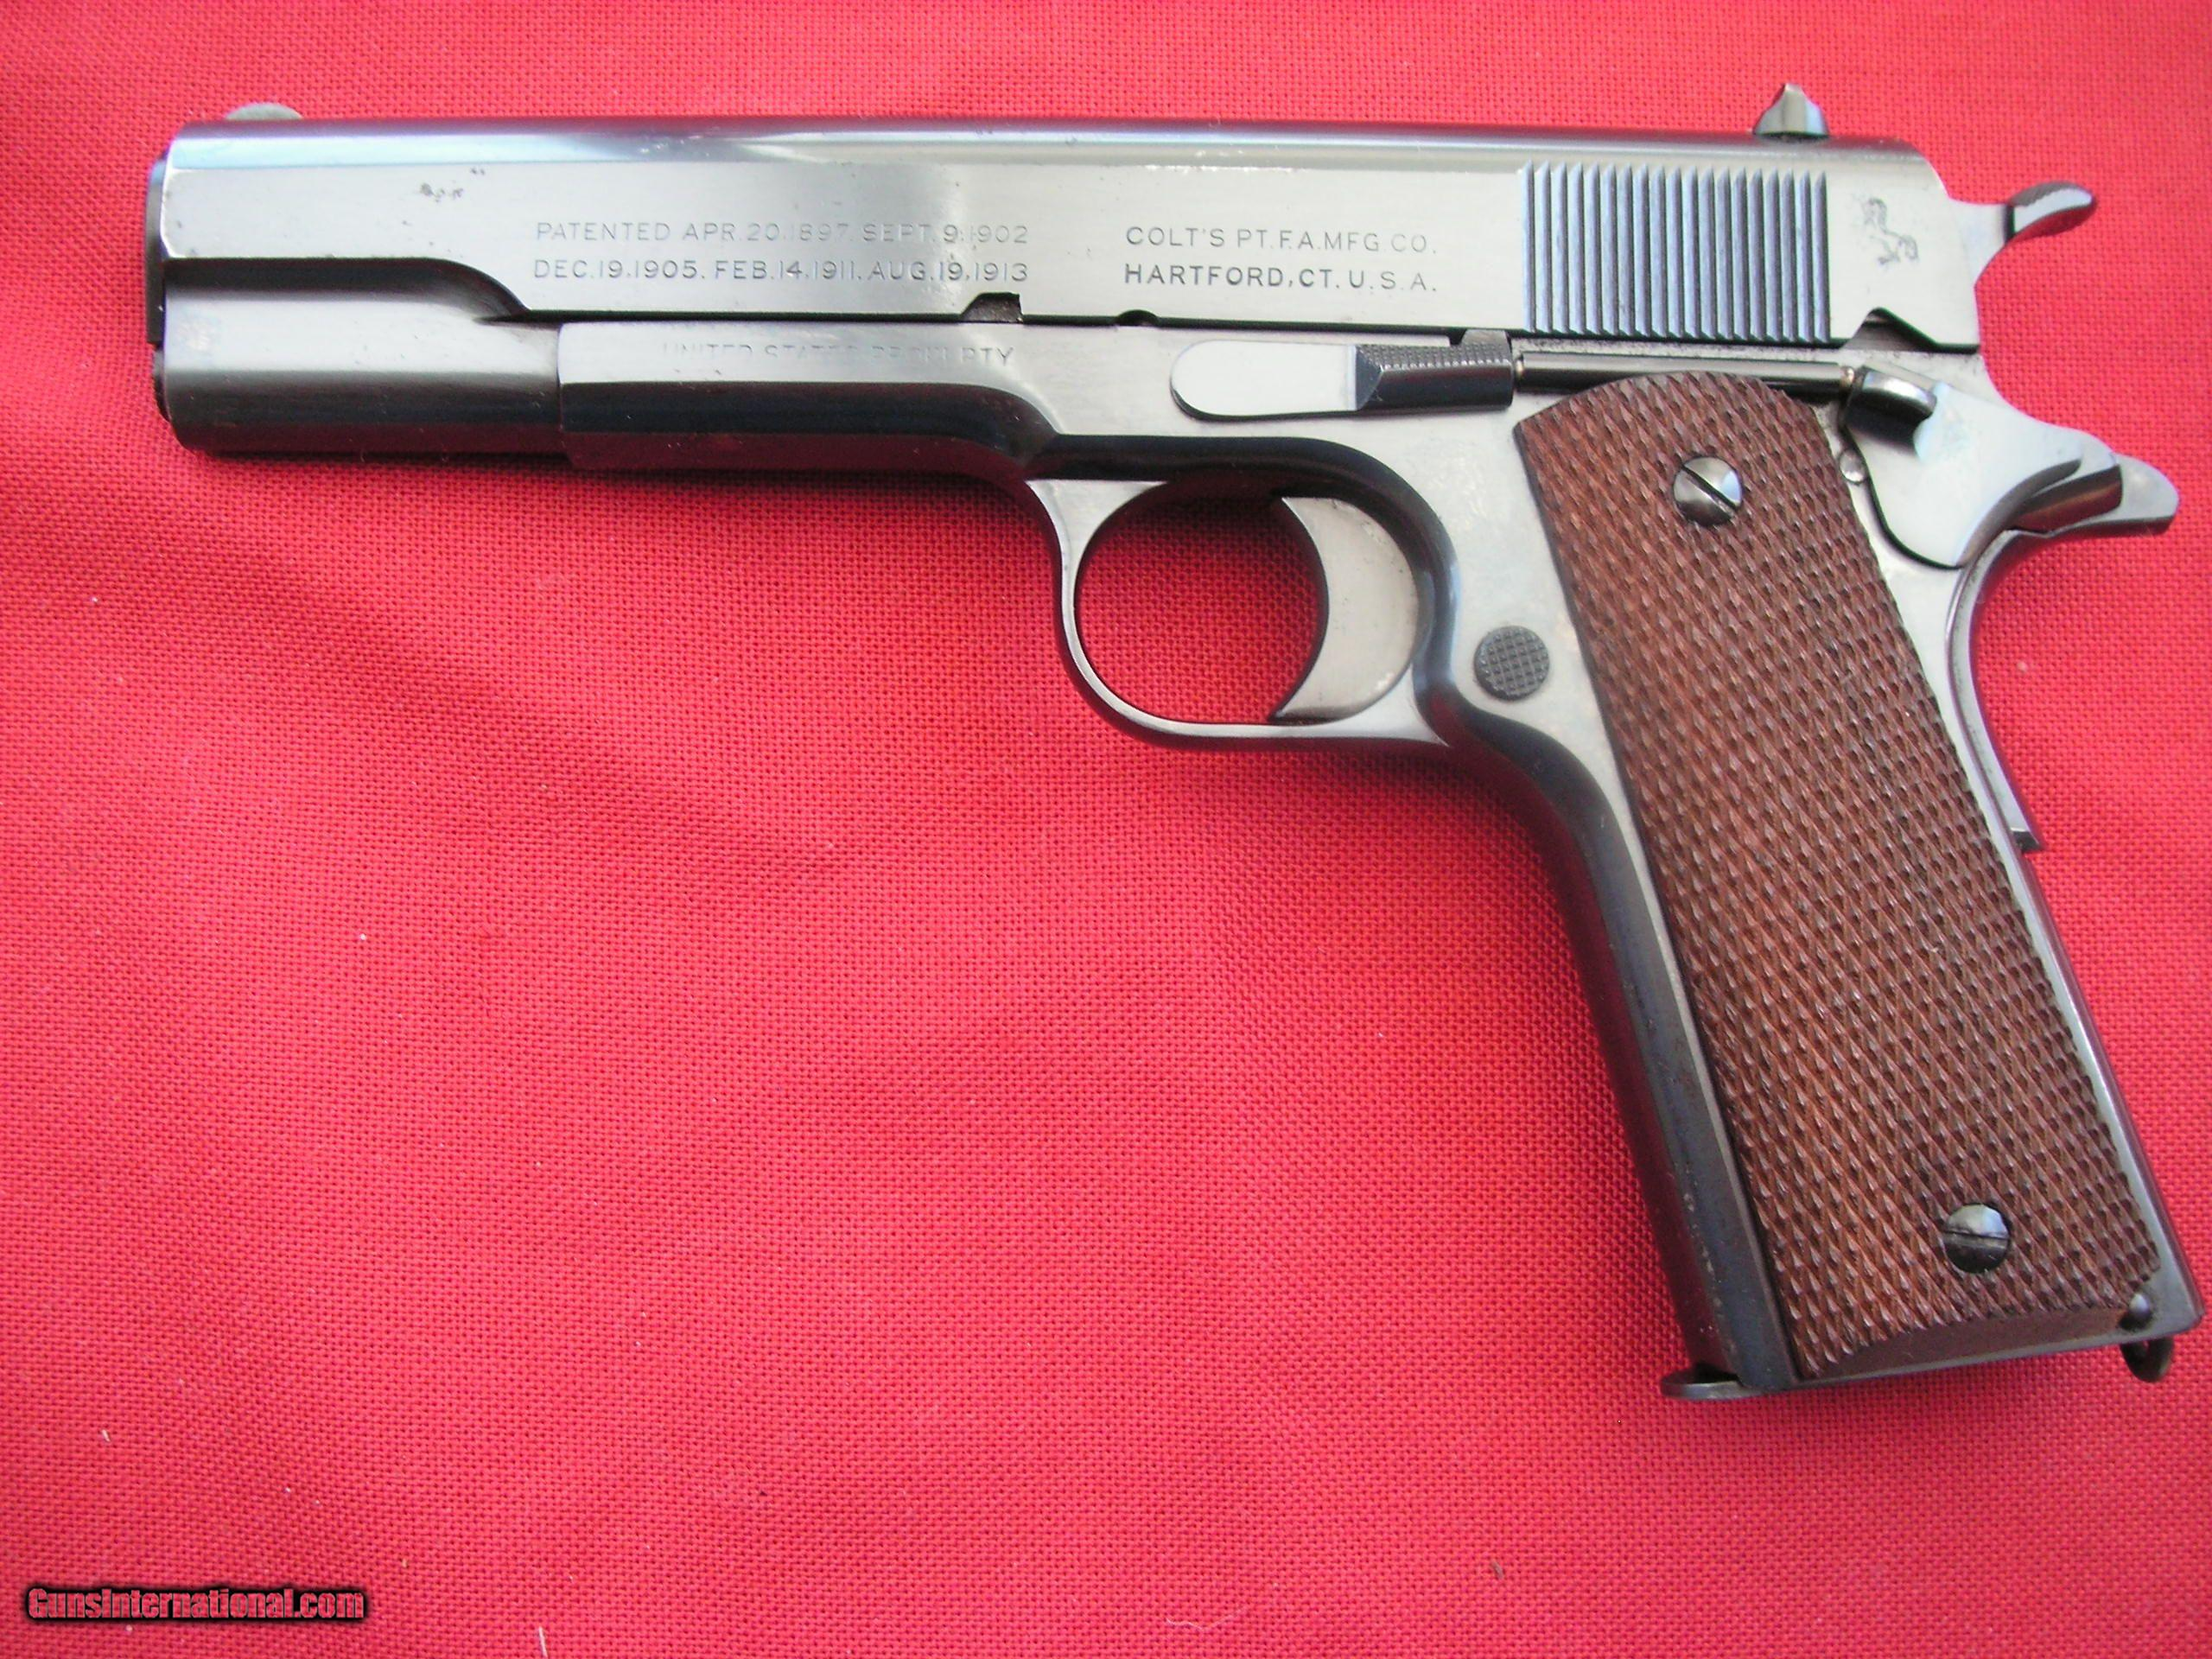 COLT 1911A1 US ARMY 1937 mfg FROM LEFTOVER FROM WWI PARTS IN 98